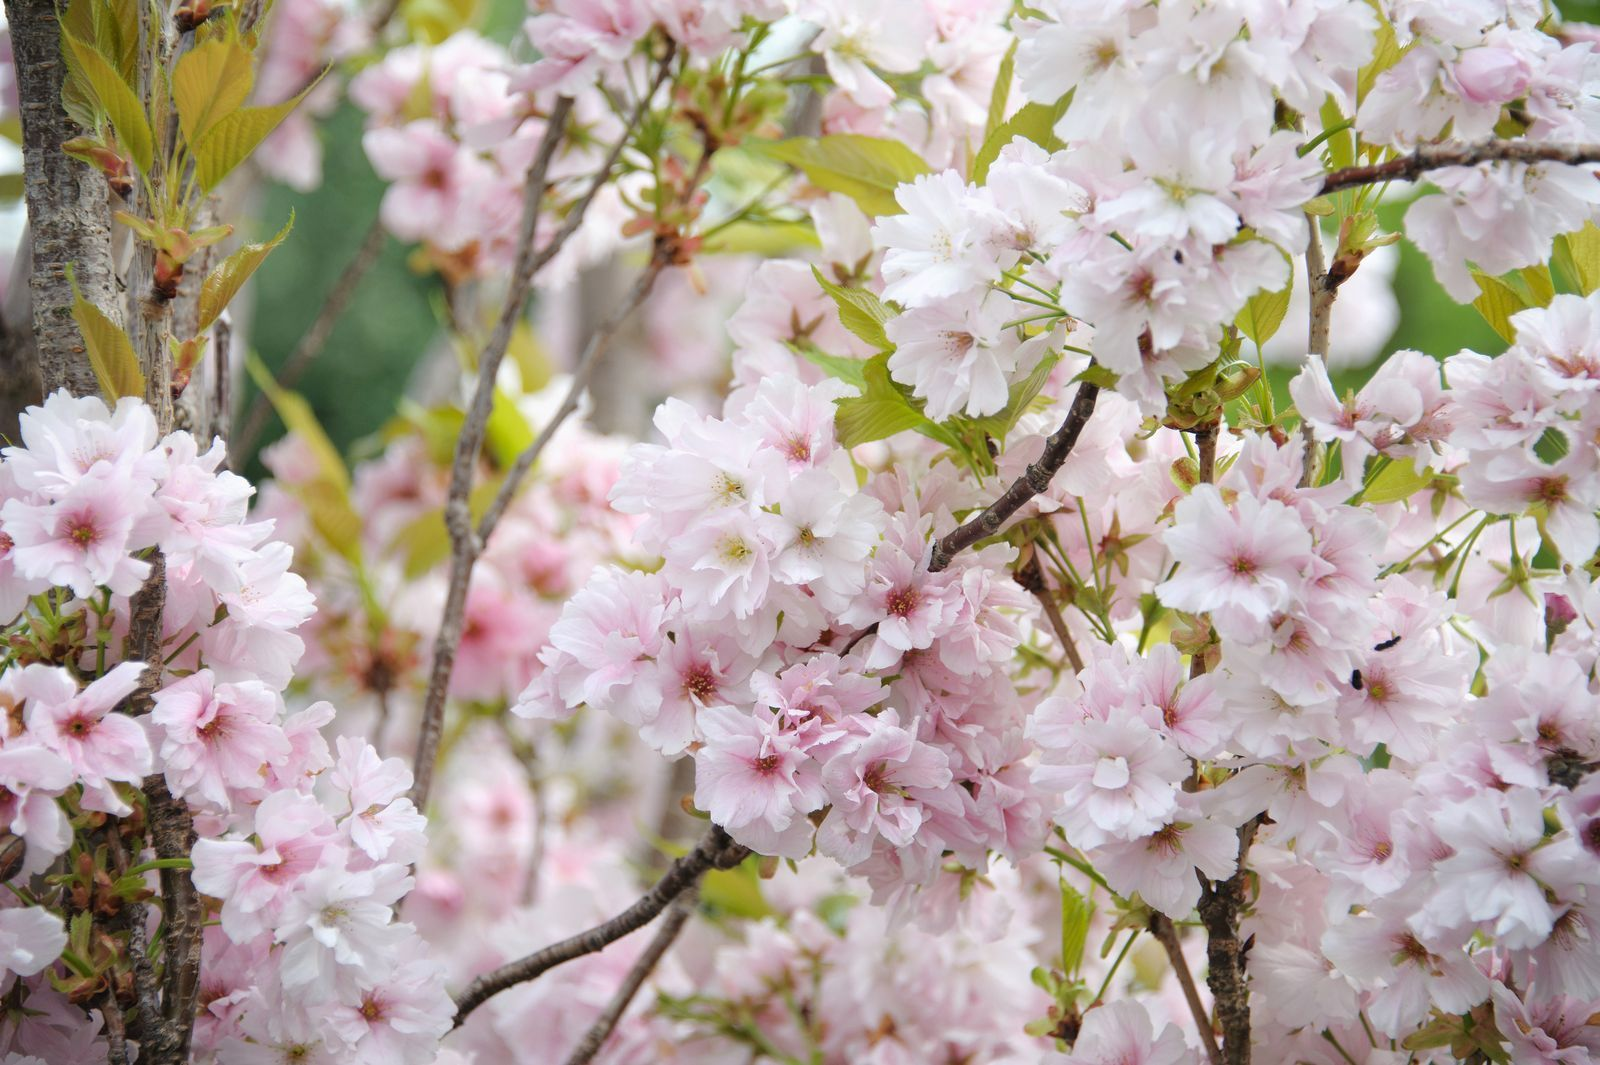 These Are The Best Trees For Small Gardens According To A Gardening Expert Flowering Cherry Tree Japanese Flowering Cherry Small Gardens